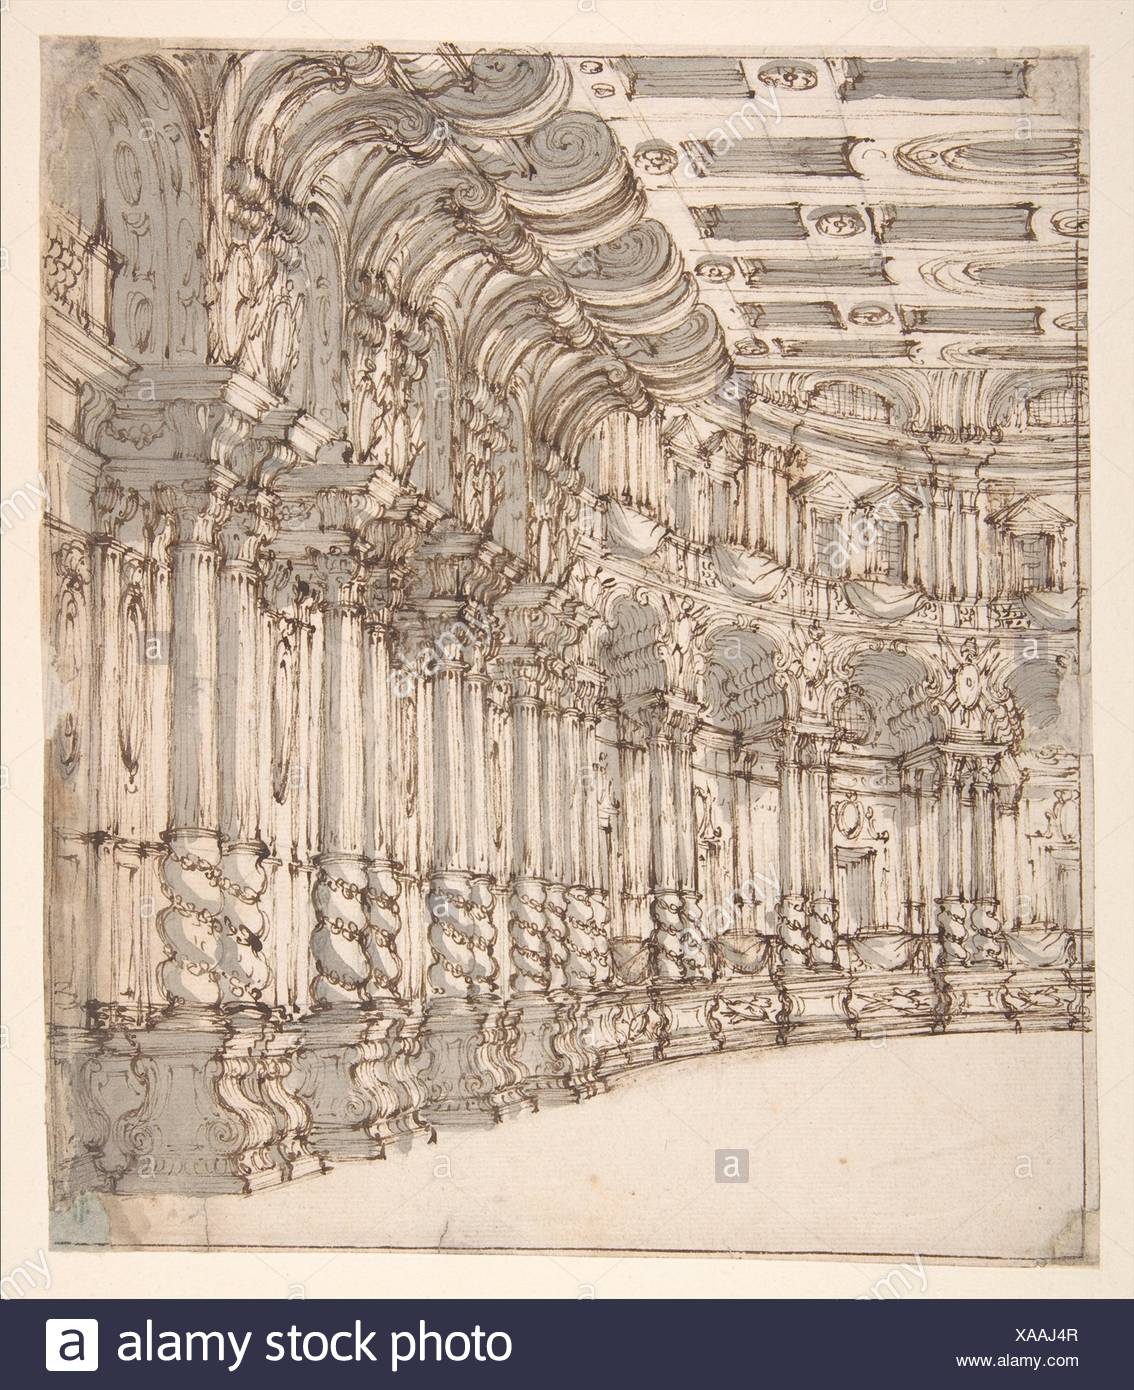 Design for a Stage Set: Interior of a Ballroom or Theater with Torqued Columns and Large Volutes Above. Artist: Francesco Galli Bibiena (Italian, - Stock Image